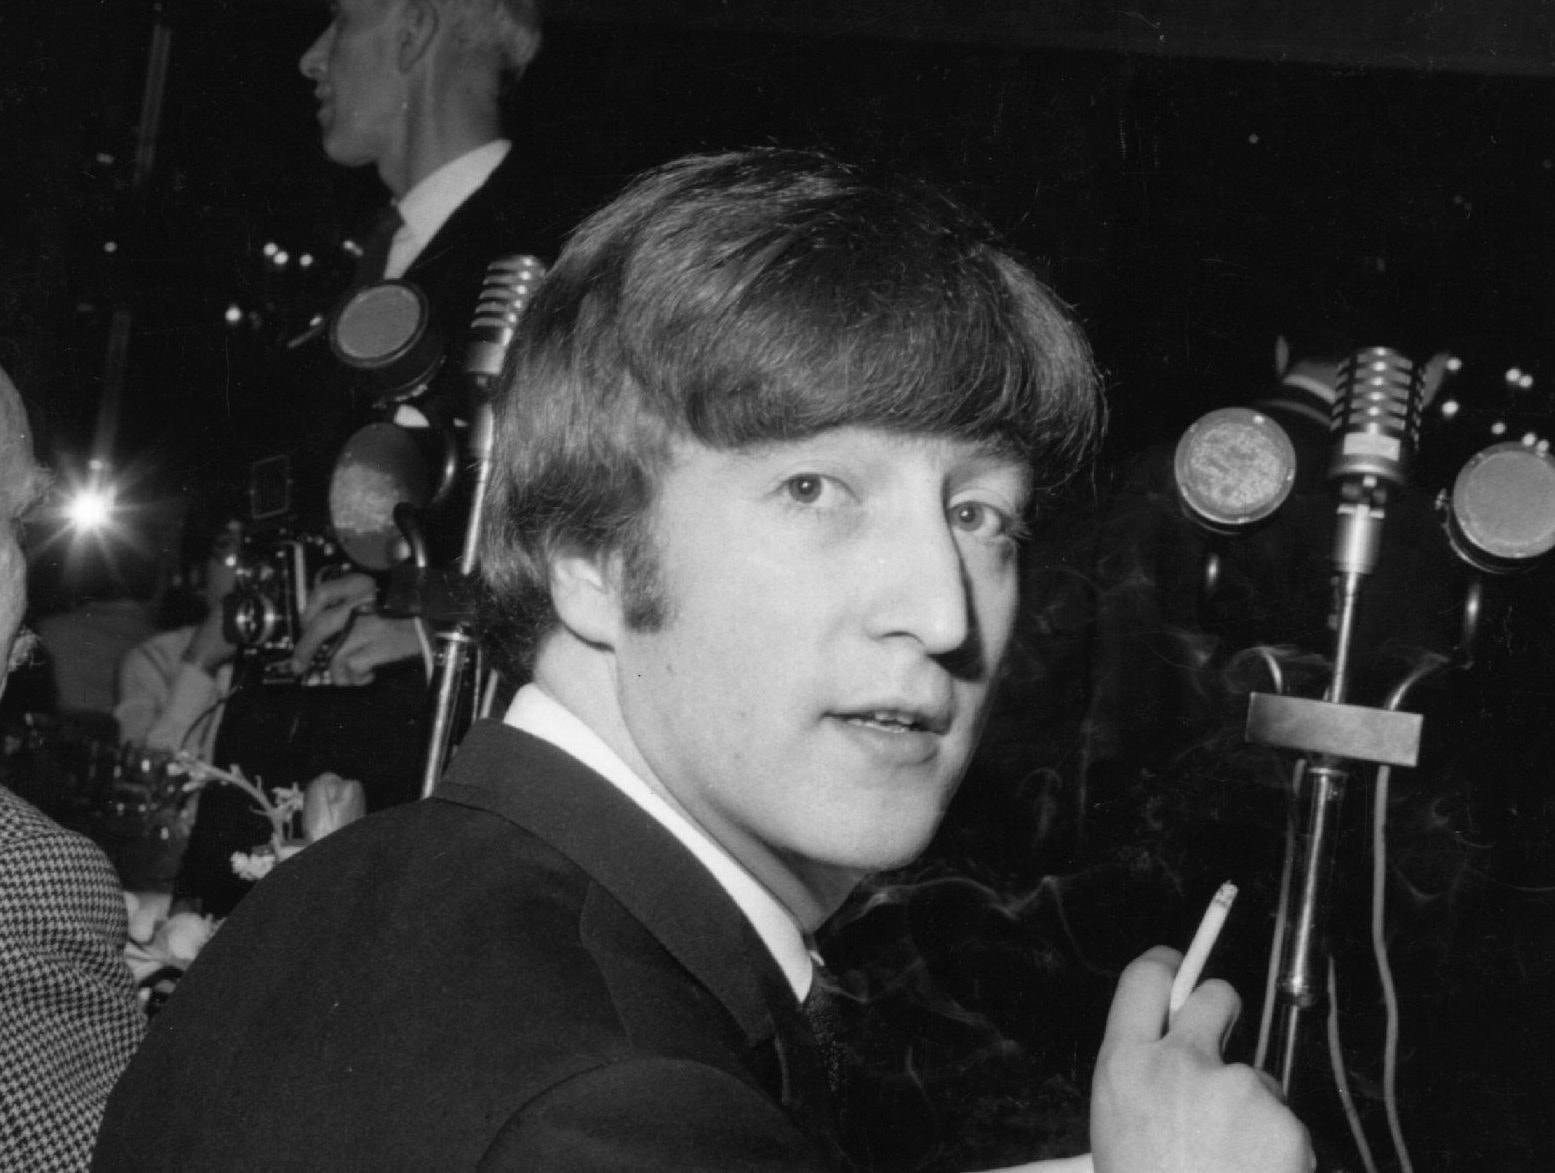 John Lennon Classic Beatles Era Photos